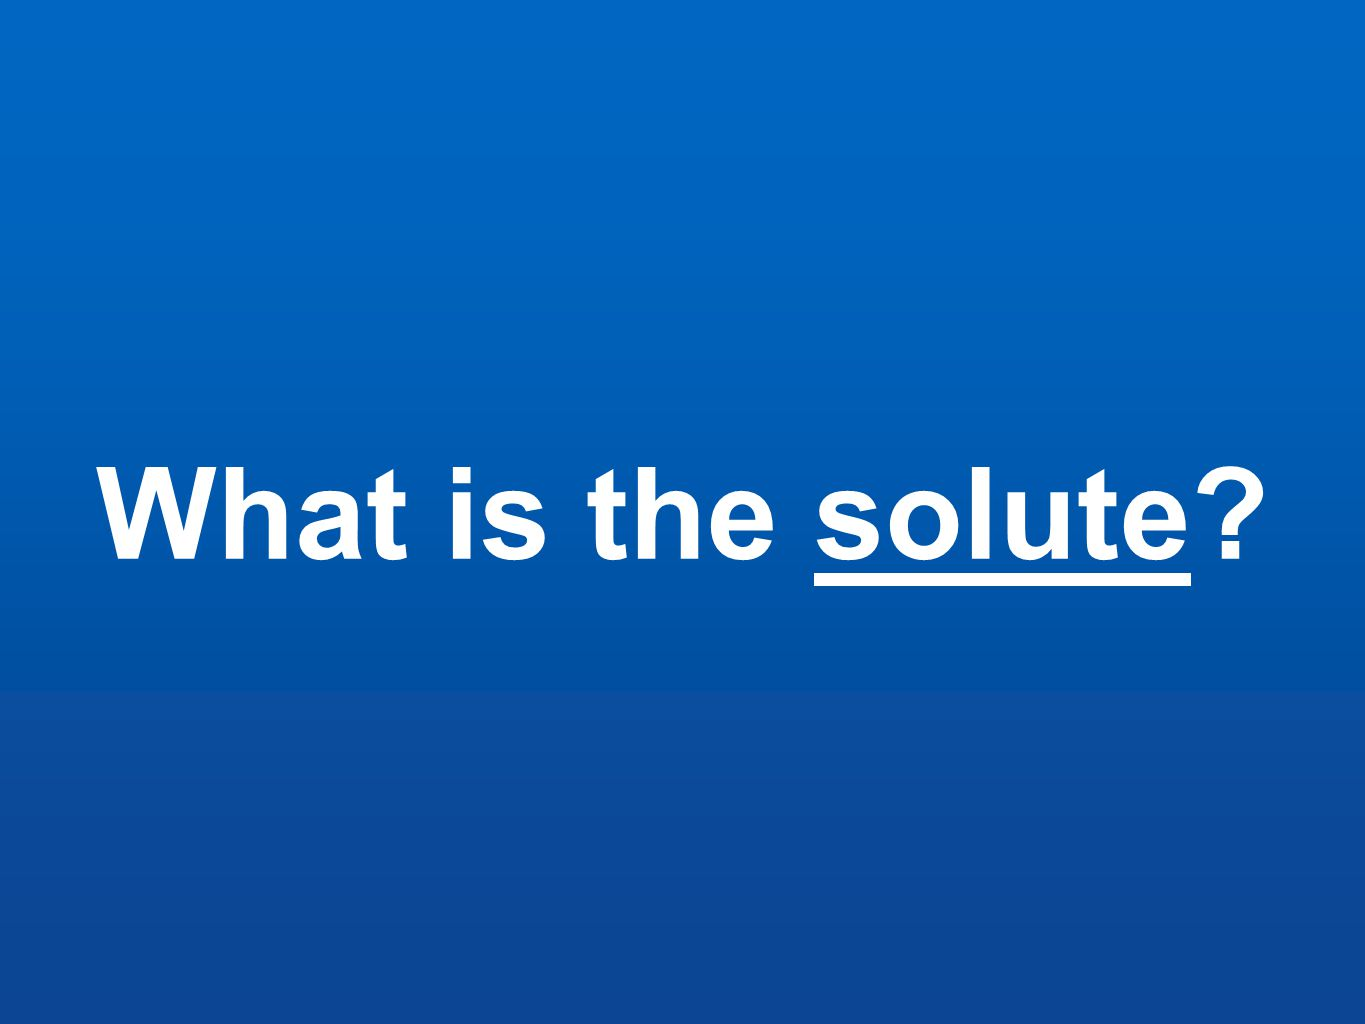 What is the solute?